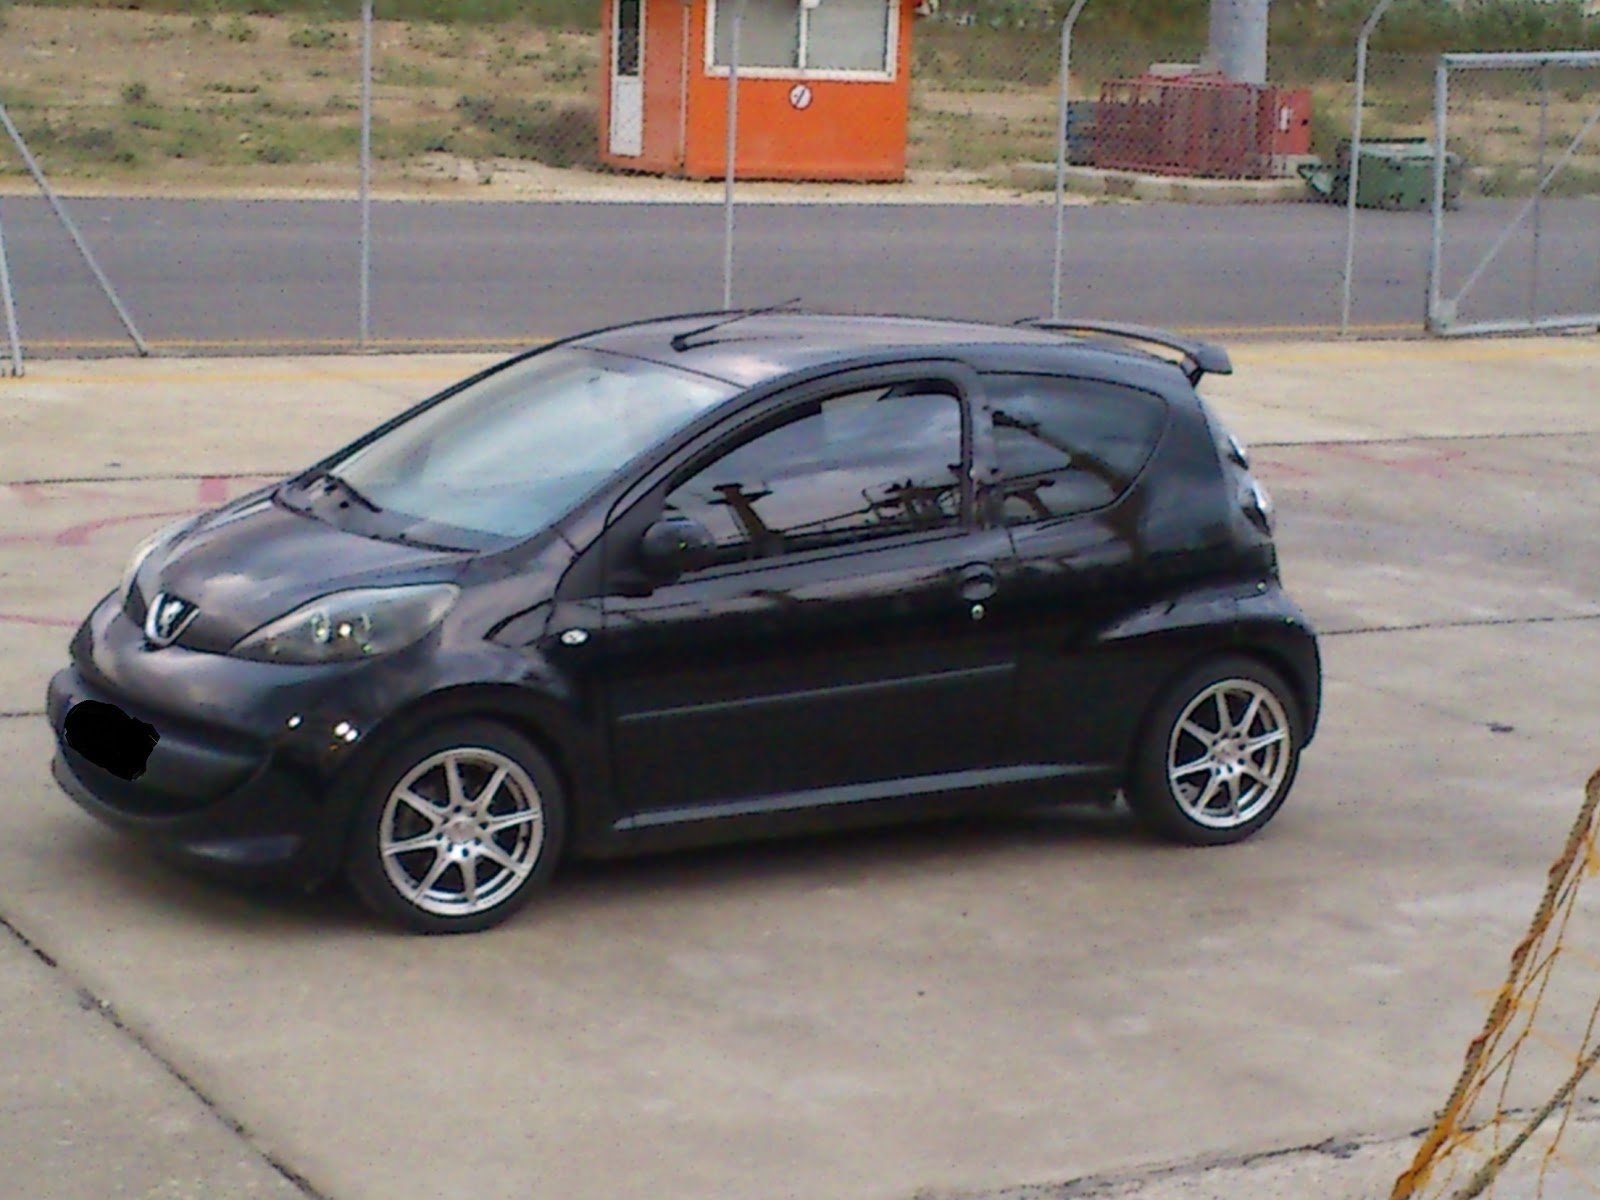 citybugblog my107 a nice peugeot 107 from crete. Black Bedroom Furniture Sets. Home Design Ideas